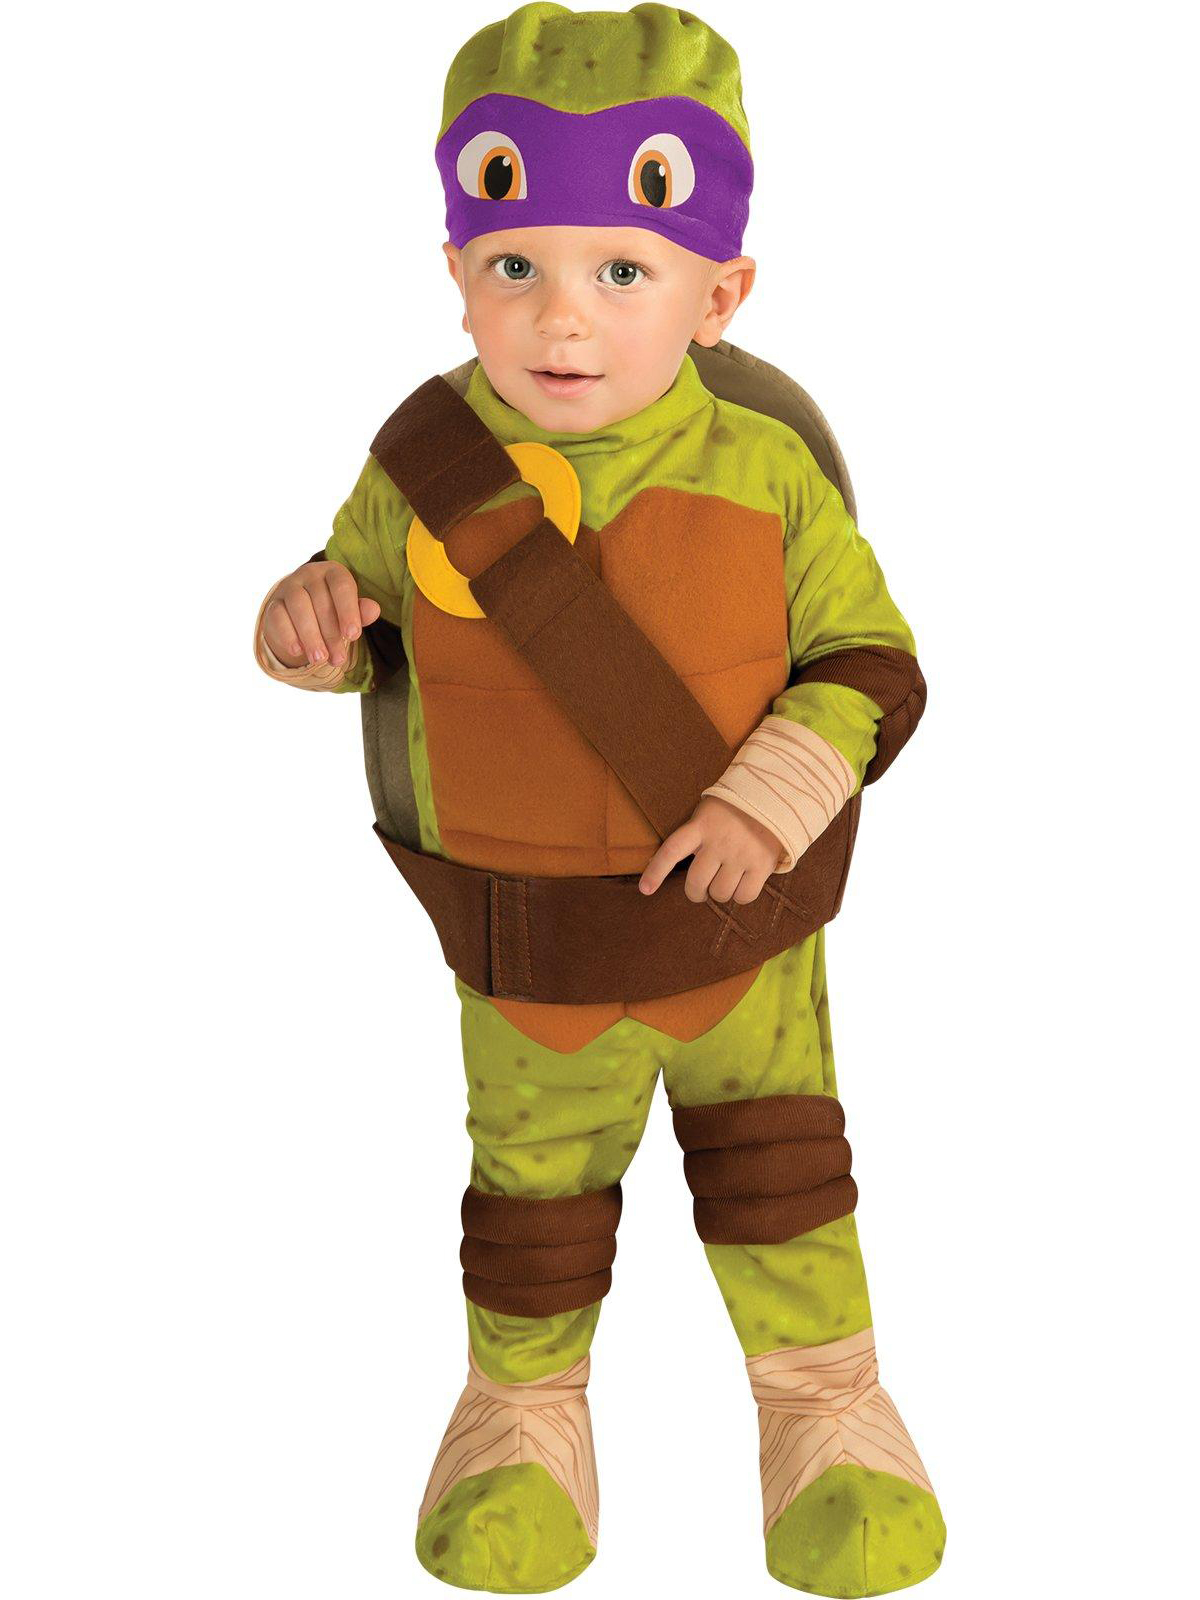 Teenage Mutant Ninja Turtle - Donatello Toddler Costume R886782-2T4T